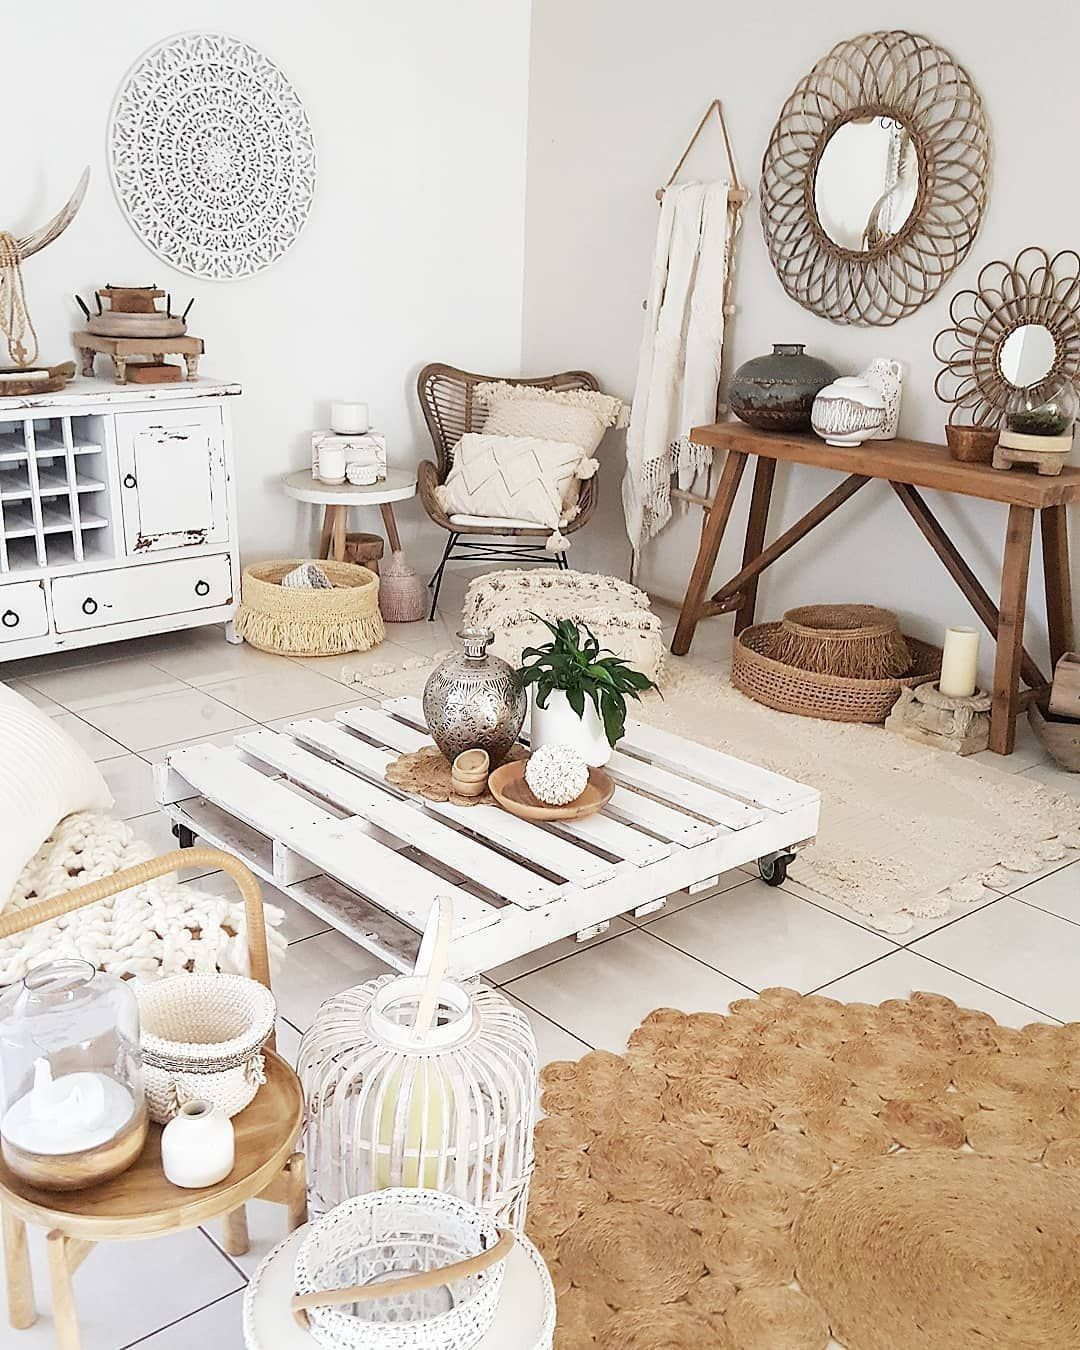 30+ CLEVER WAYS TO DECORATE YOUR HOME LOOK LIKE A HIPPIE BOHO IDEAS #decorateshop